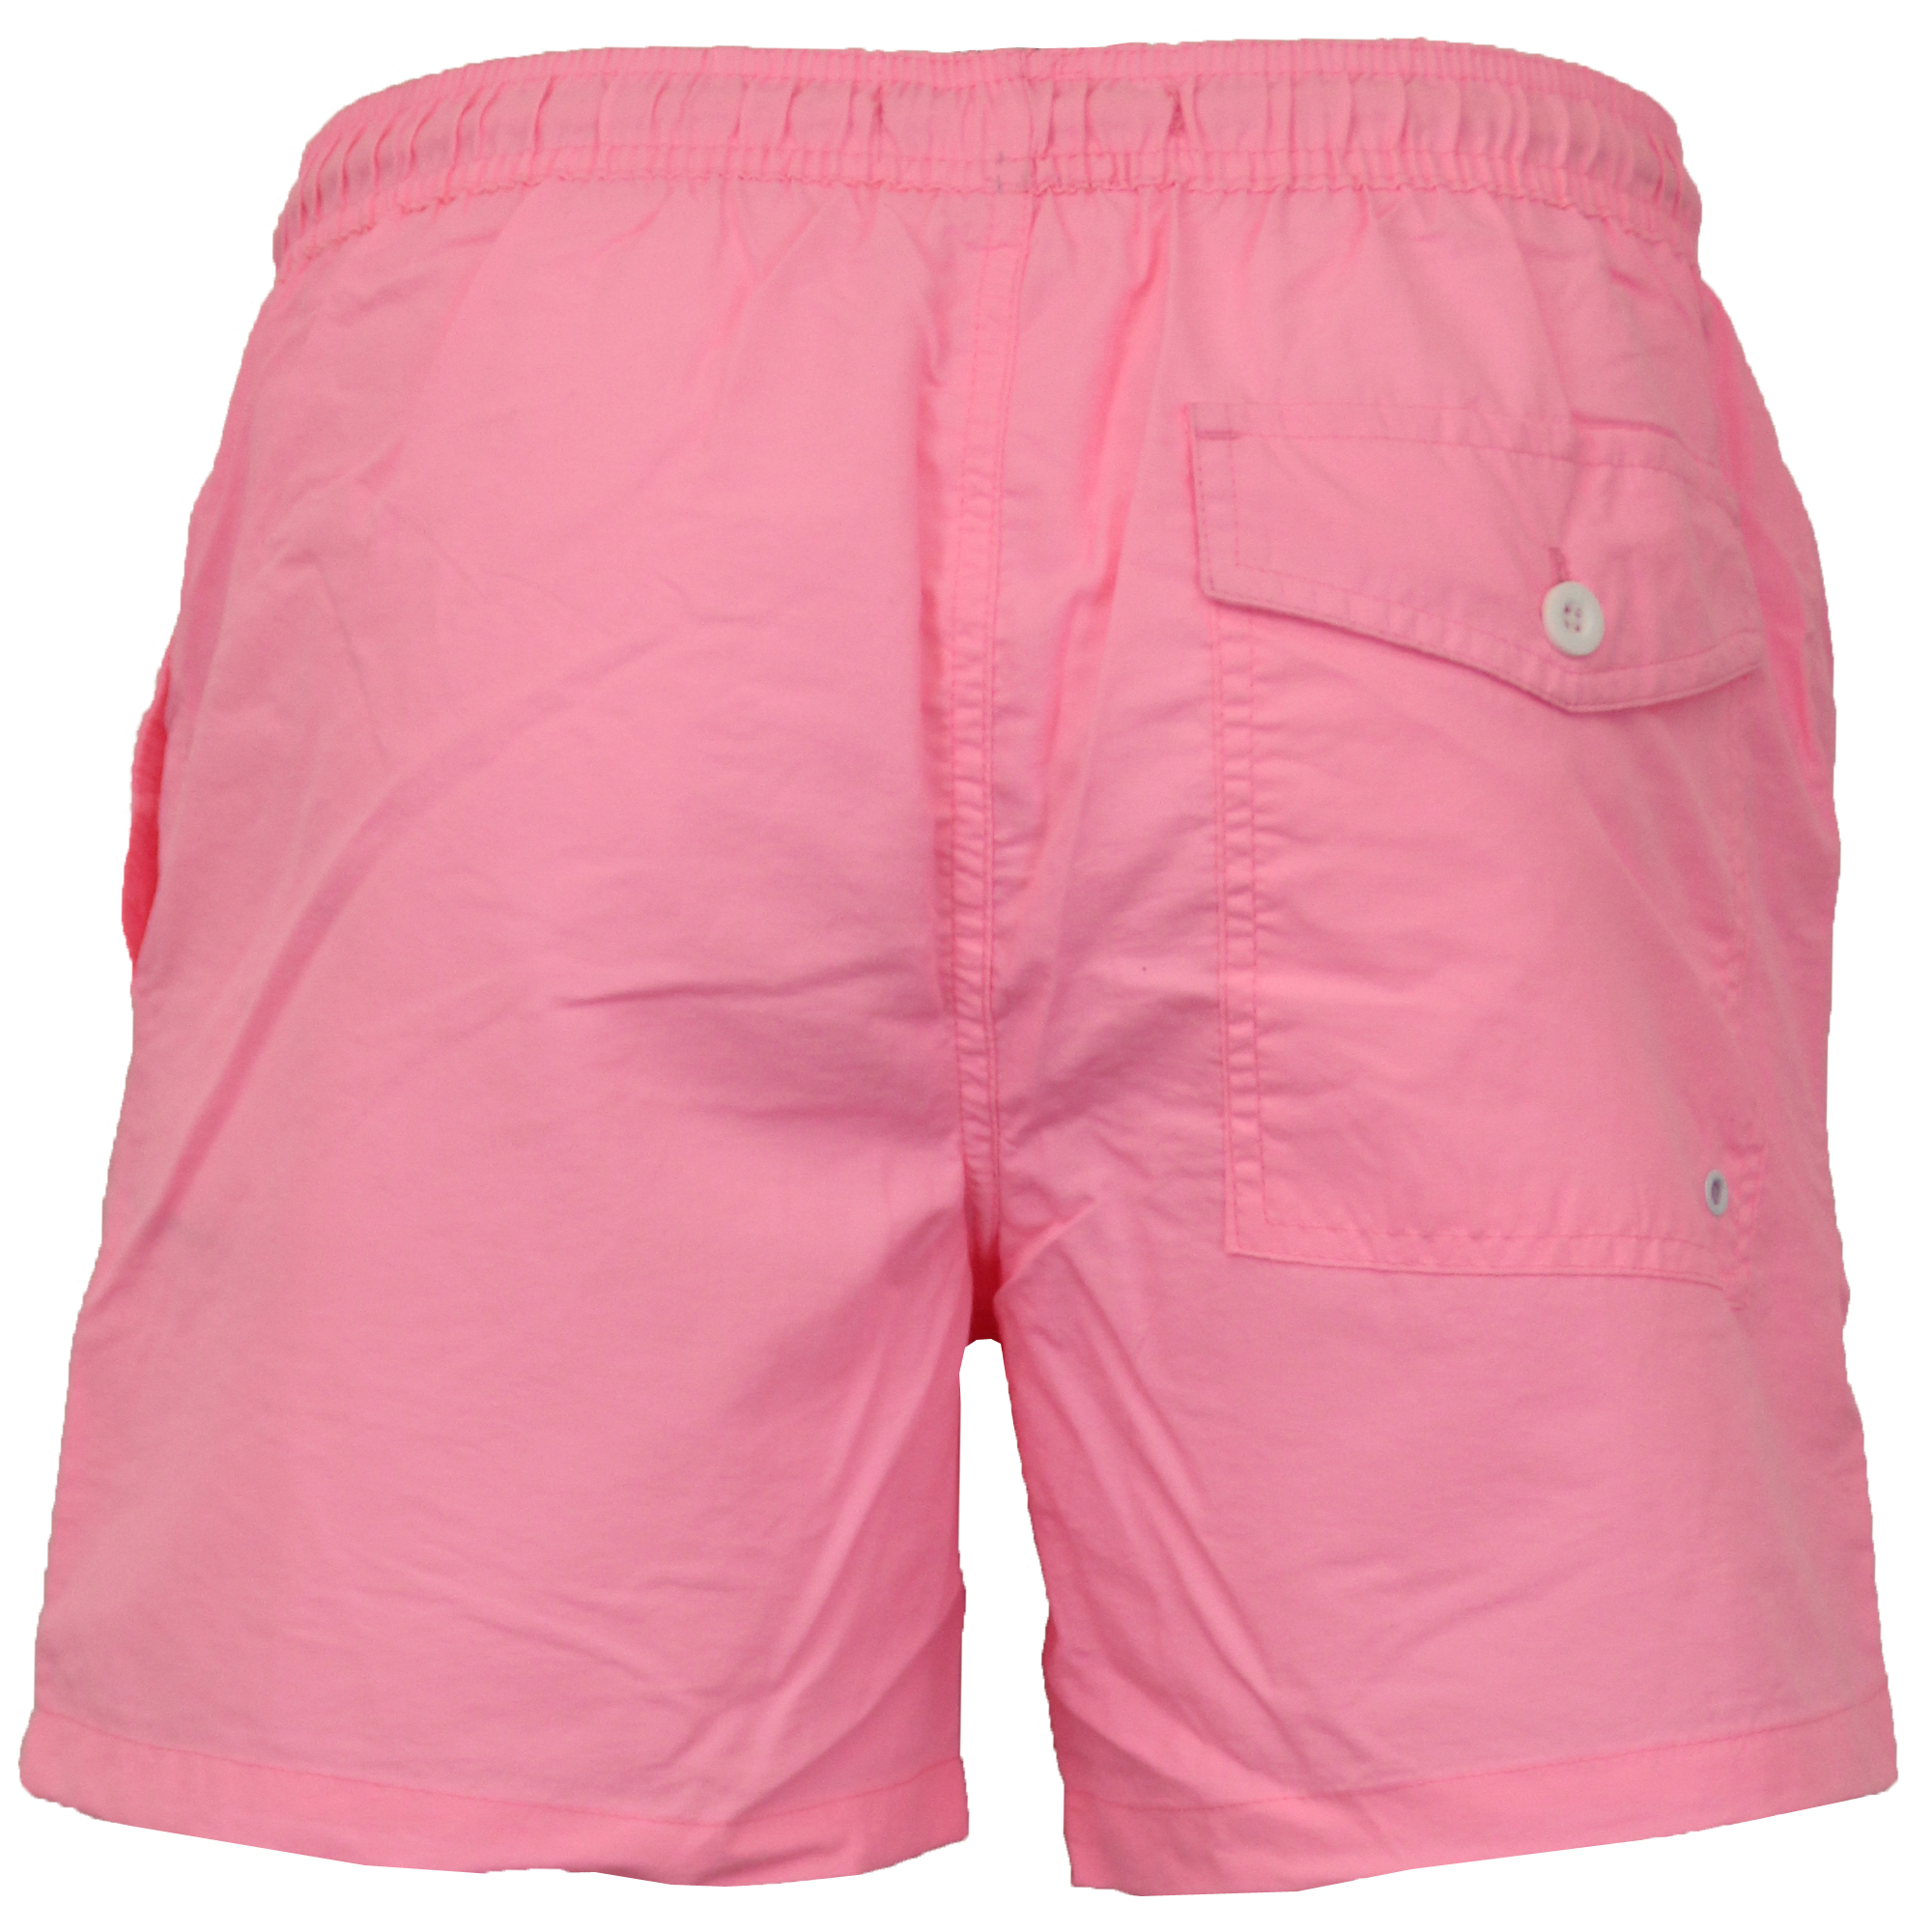 Mens-Swim-Board-Shorts-By-Brave-Soul-Mesh-Lined-New thumbnail 47